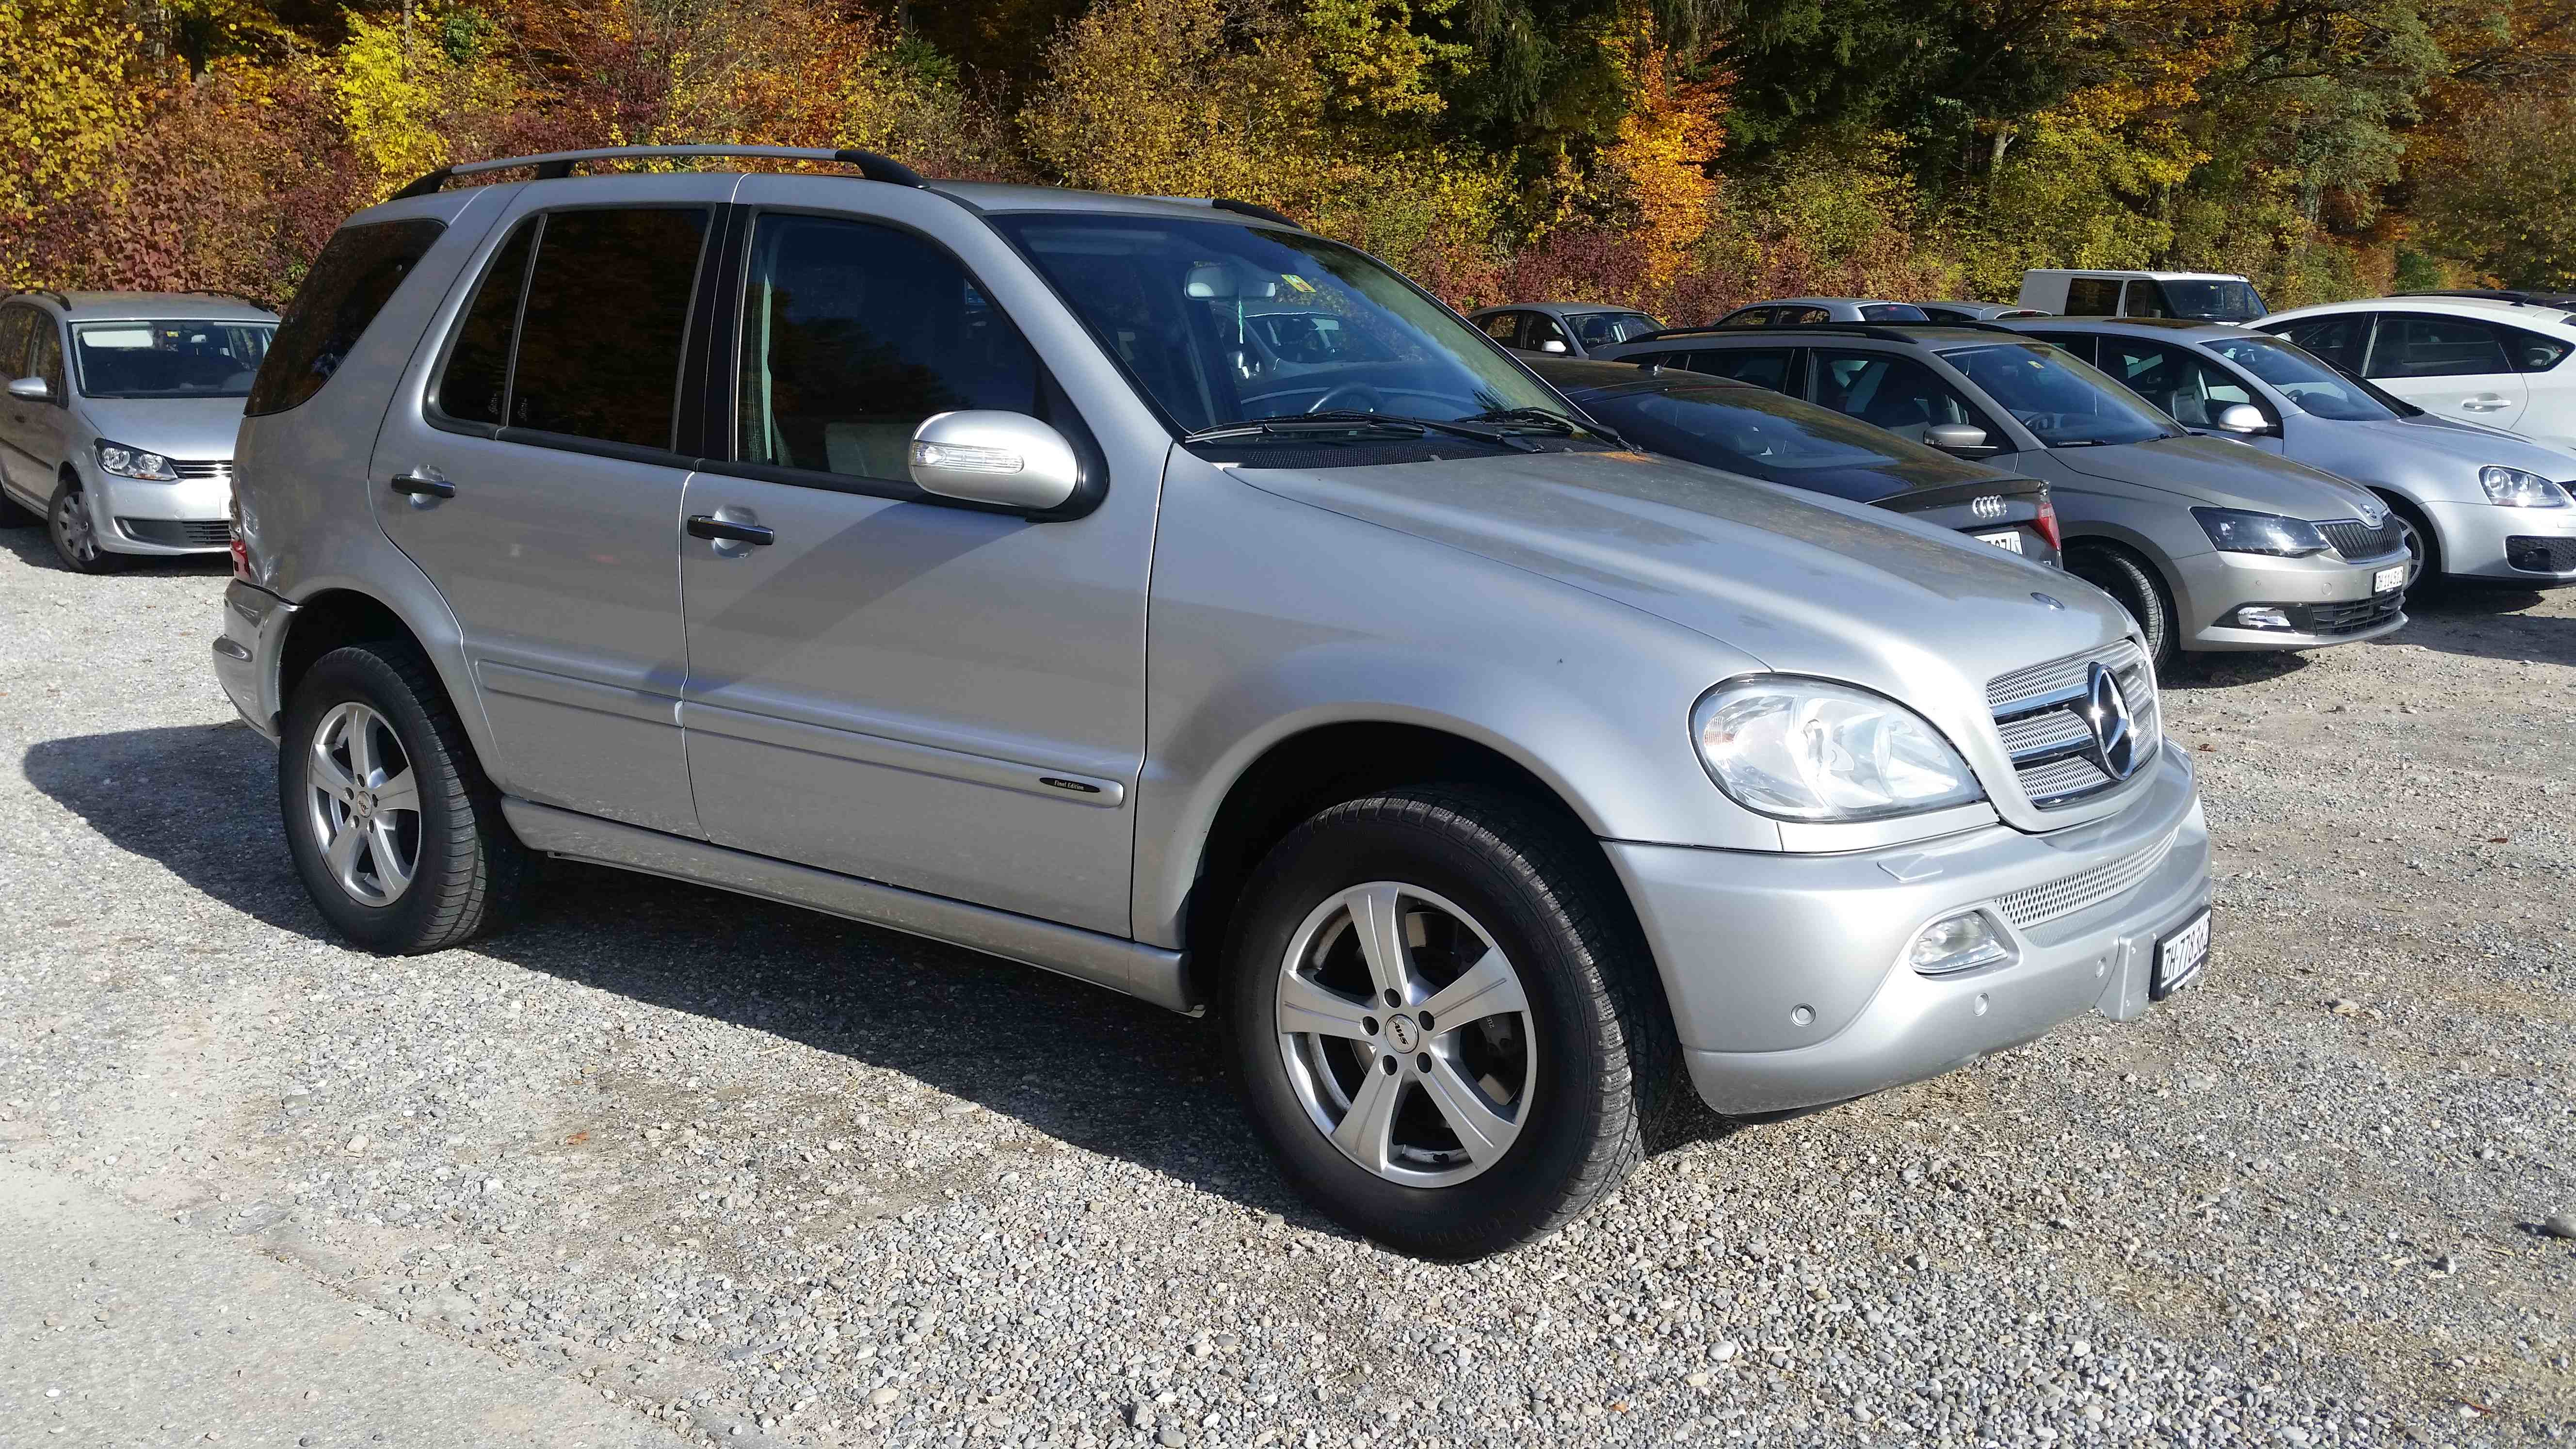 11667_MERCEDES_BENZ_ML_270_CDI_20151024.jpg